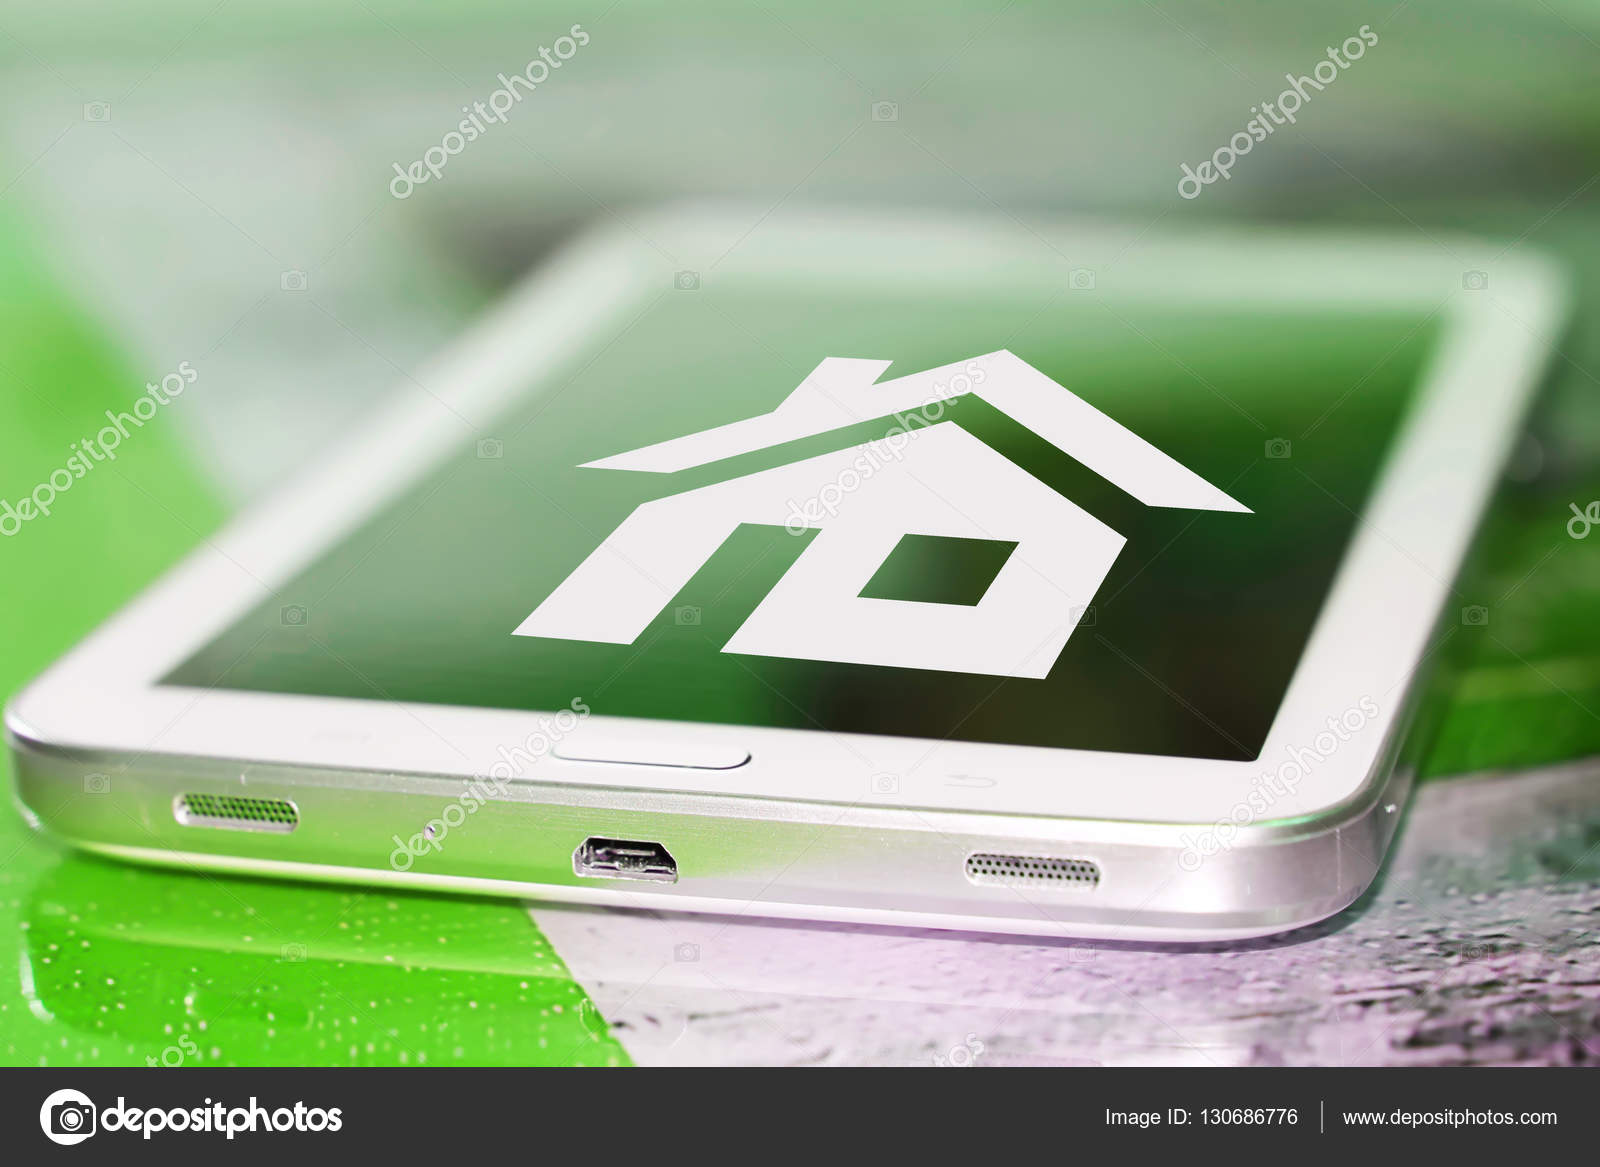 A House Symbol On The Cell Phone Screen Stock Photo Vlerijse